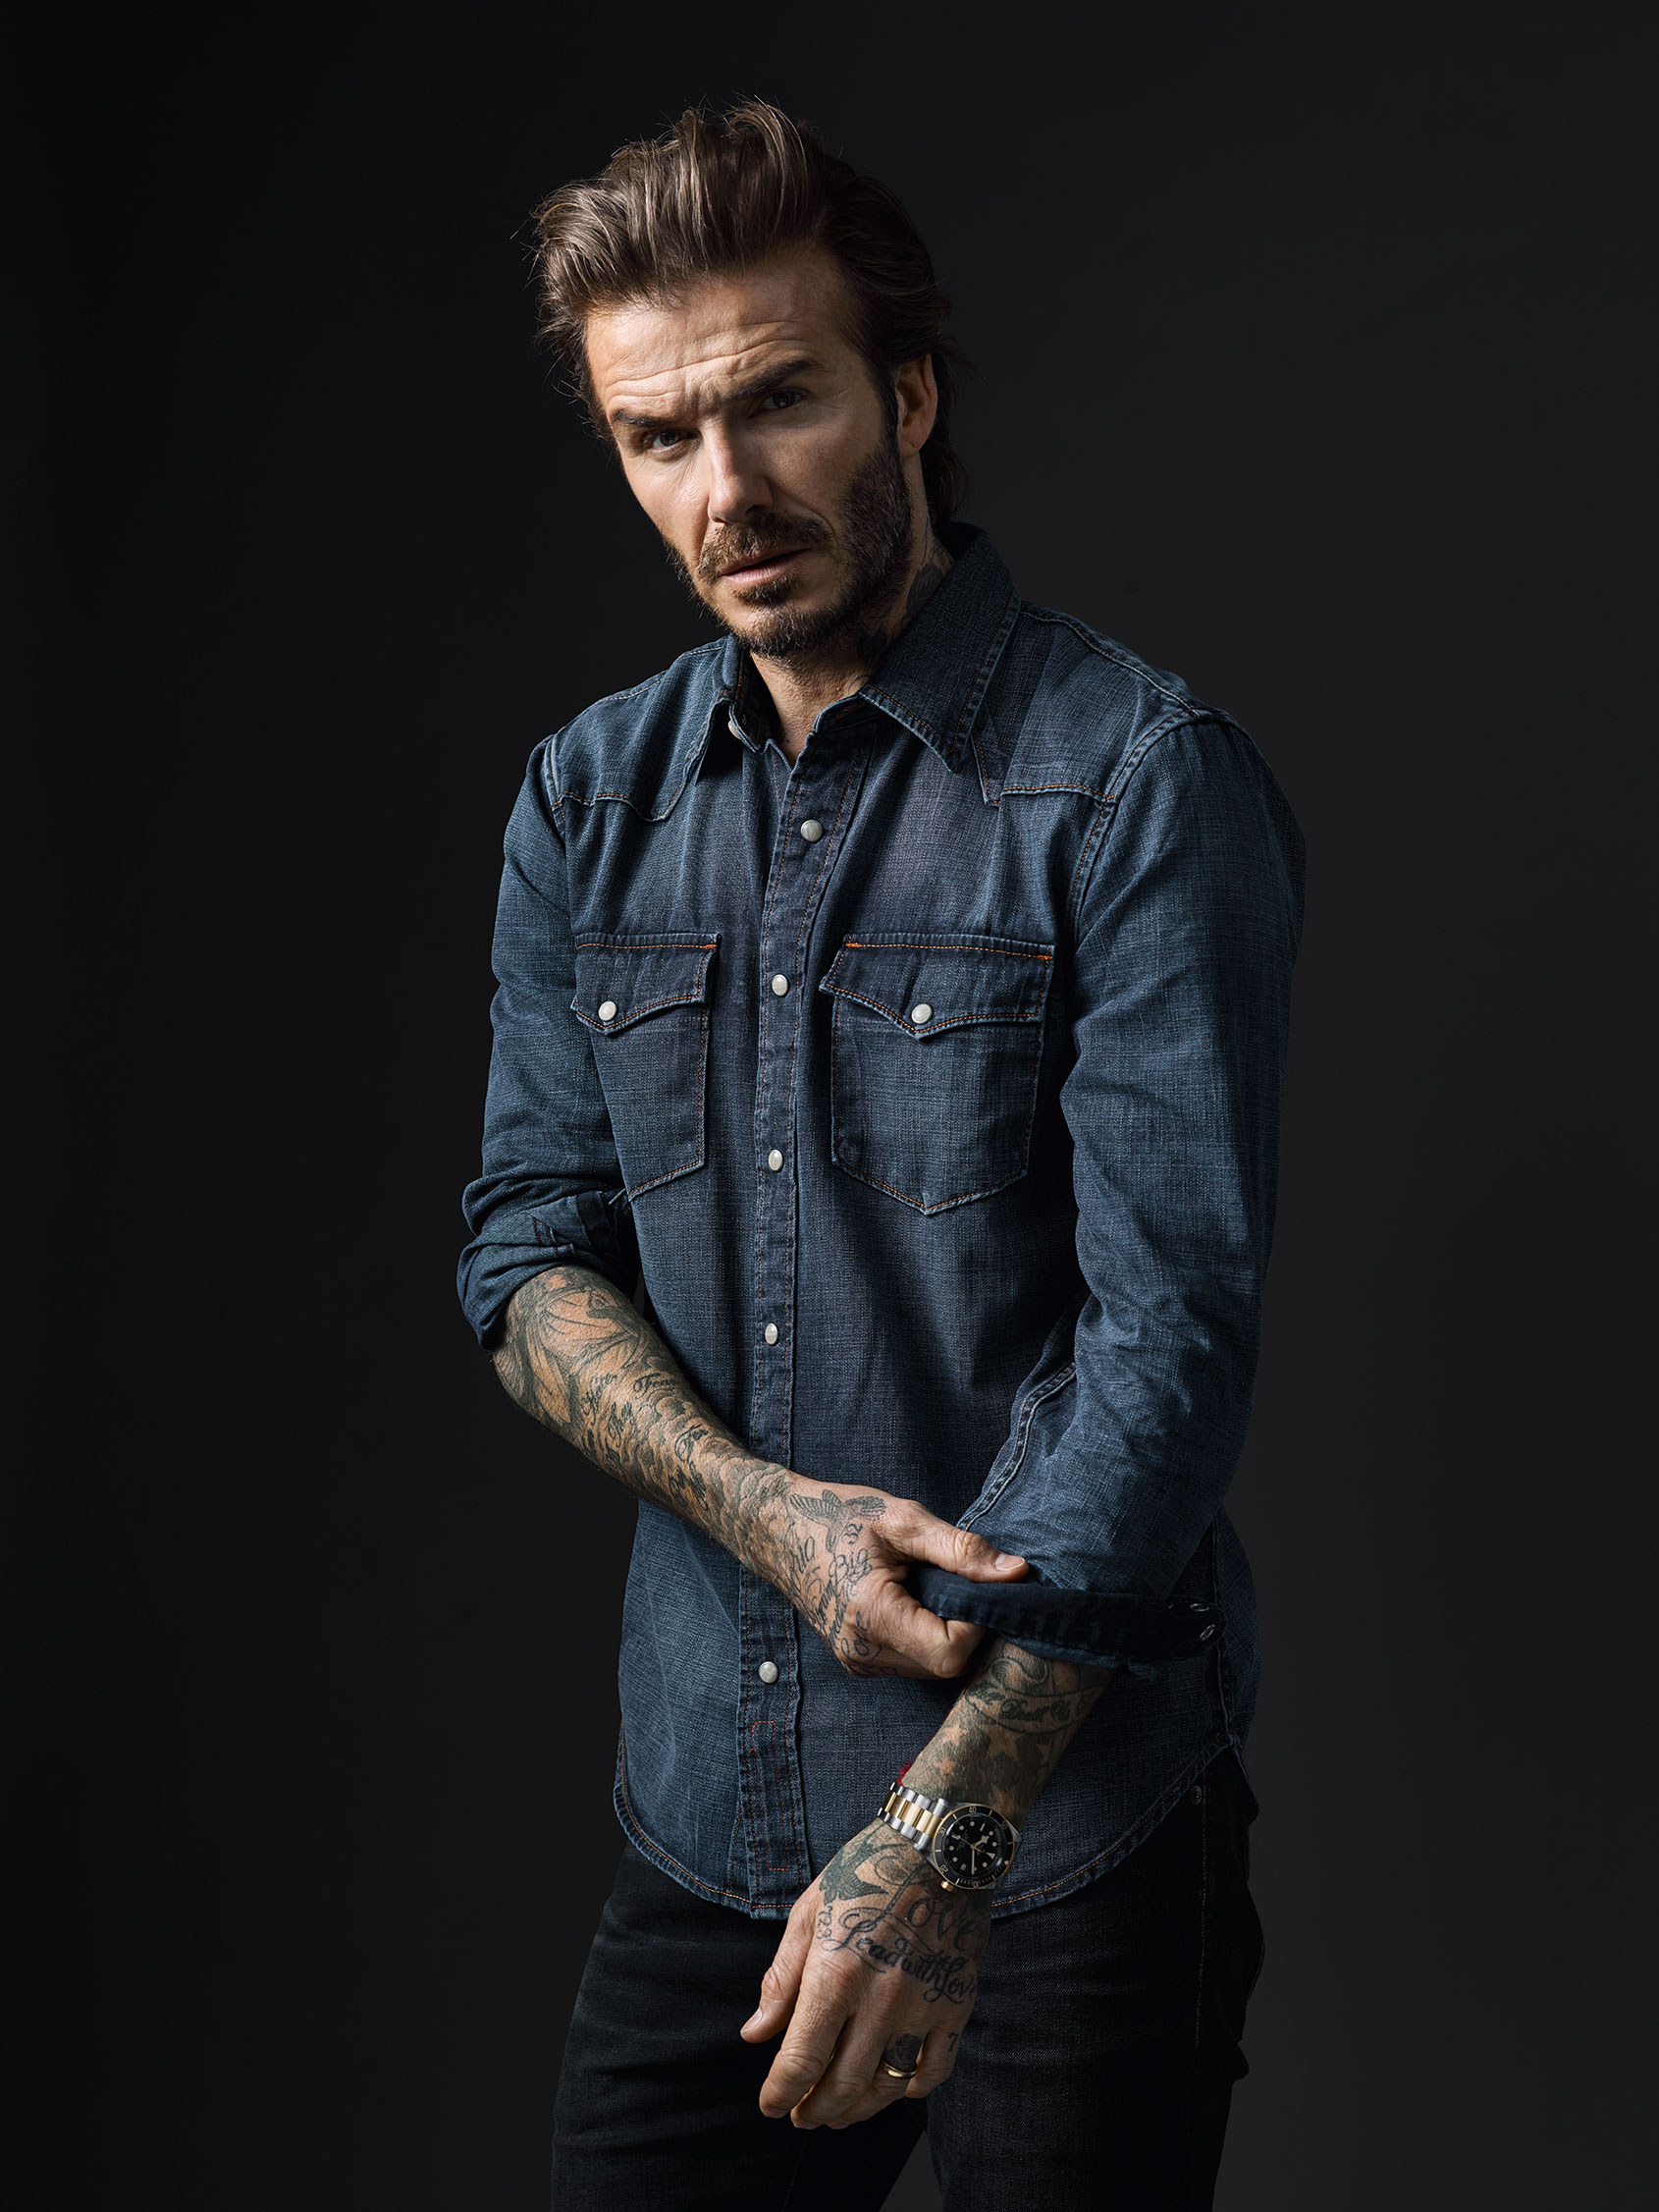 Tudor announces david beckham as new brand ambassador for 2017 - David beckham ...